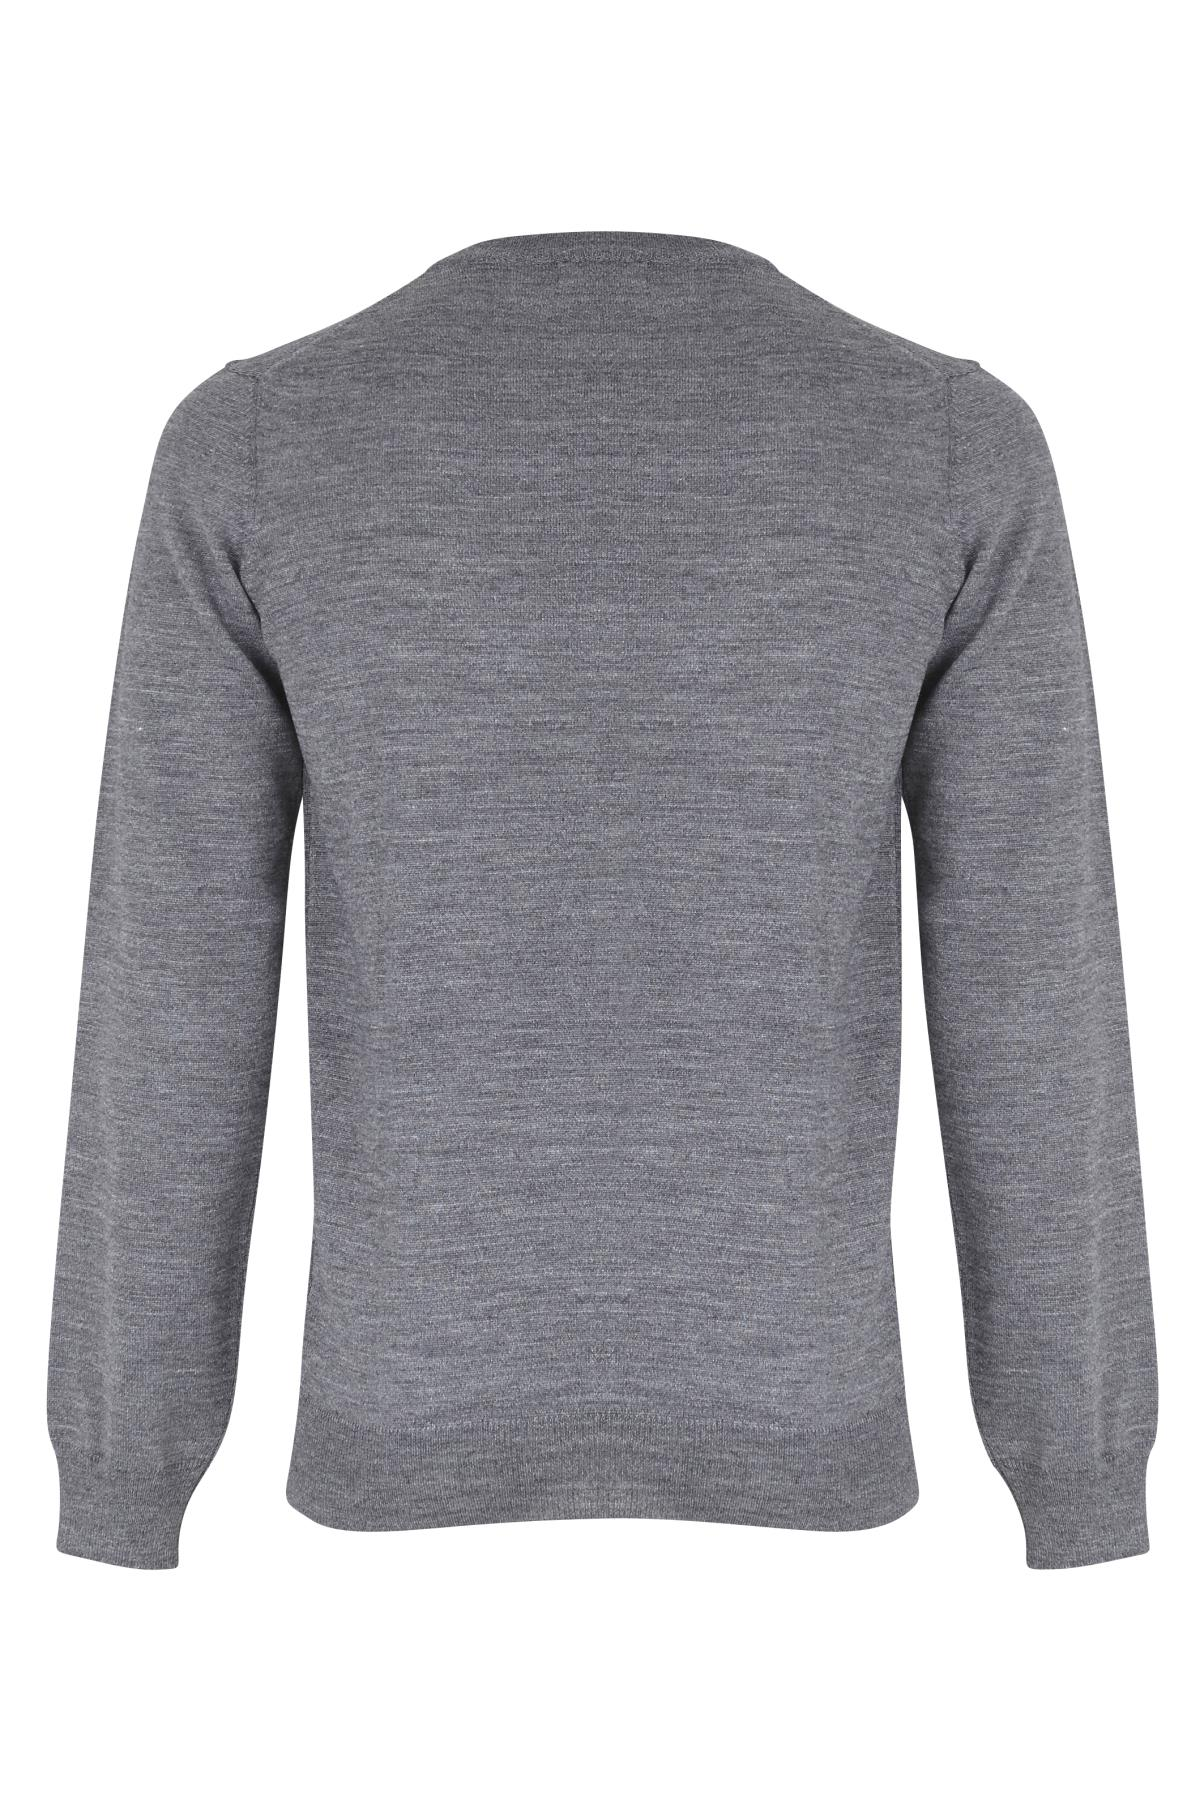 Pewter mix Strikpullover fra Casual Friday – Køb Pewter mix Strikpullover fra str. S-XXL her